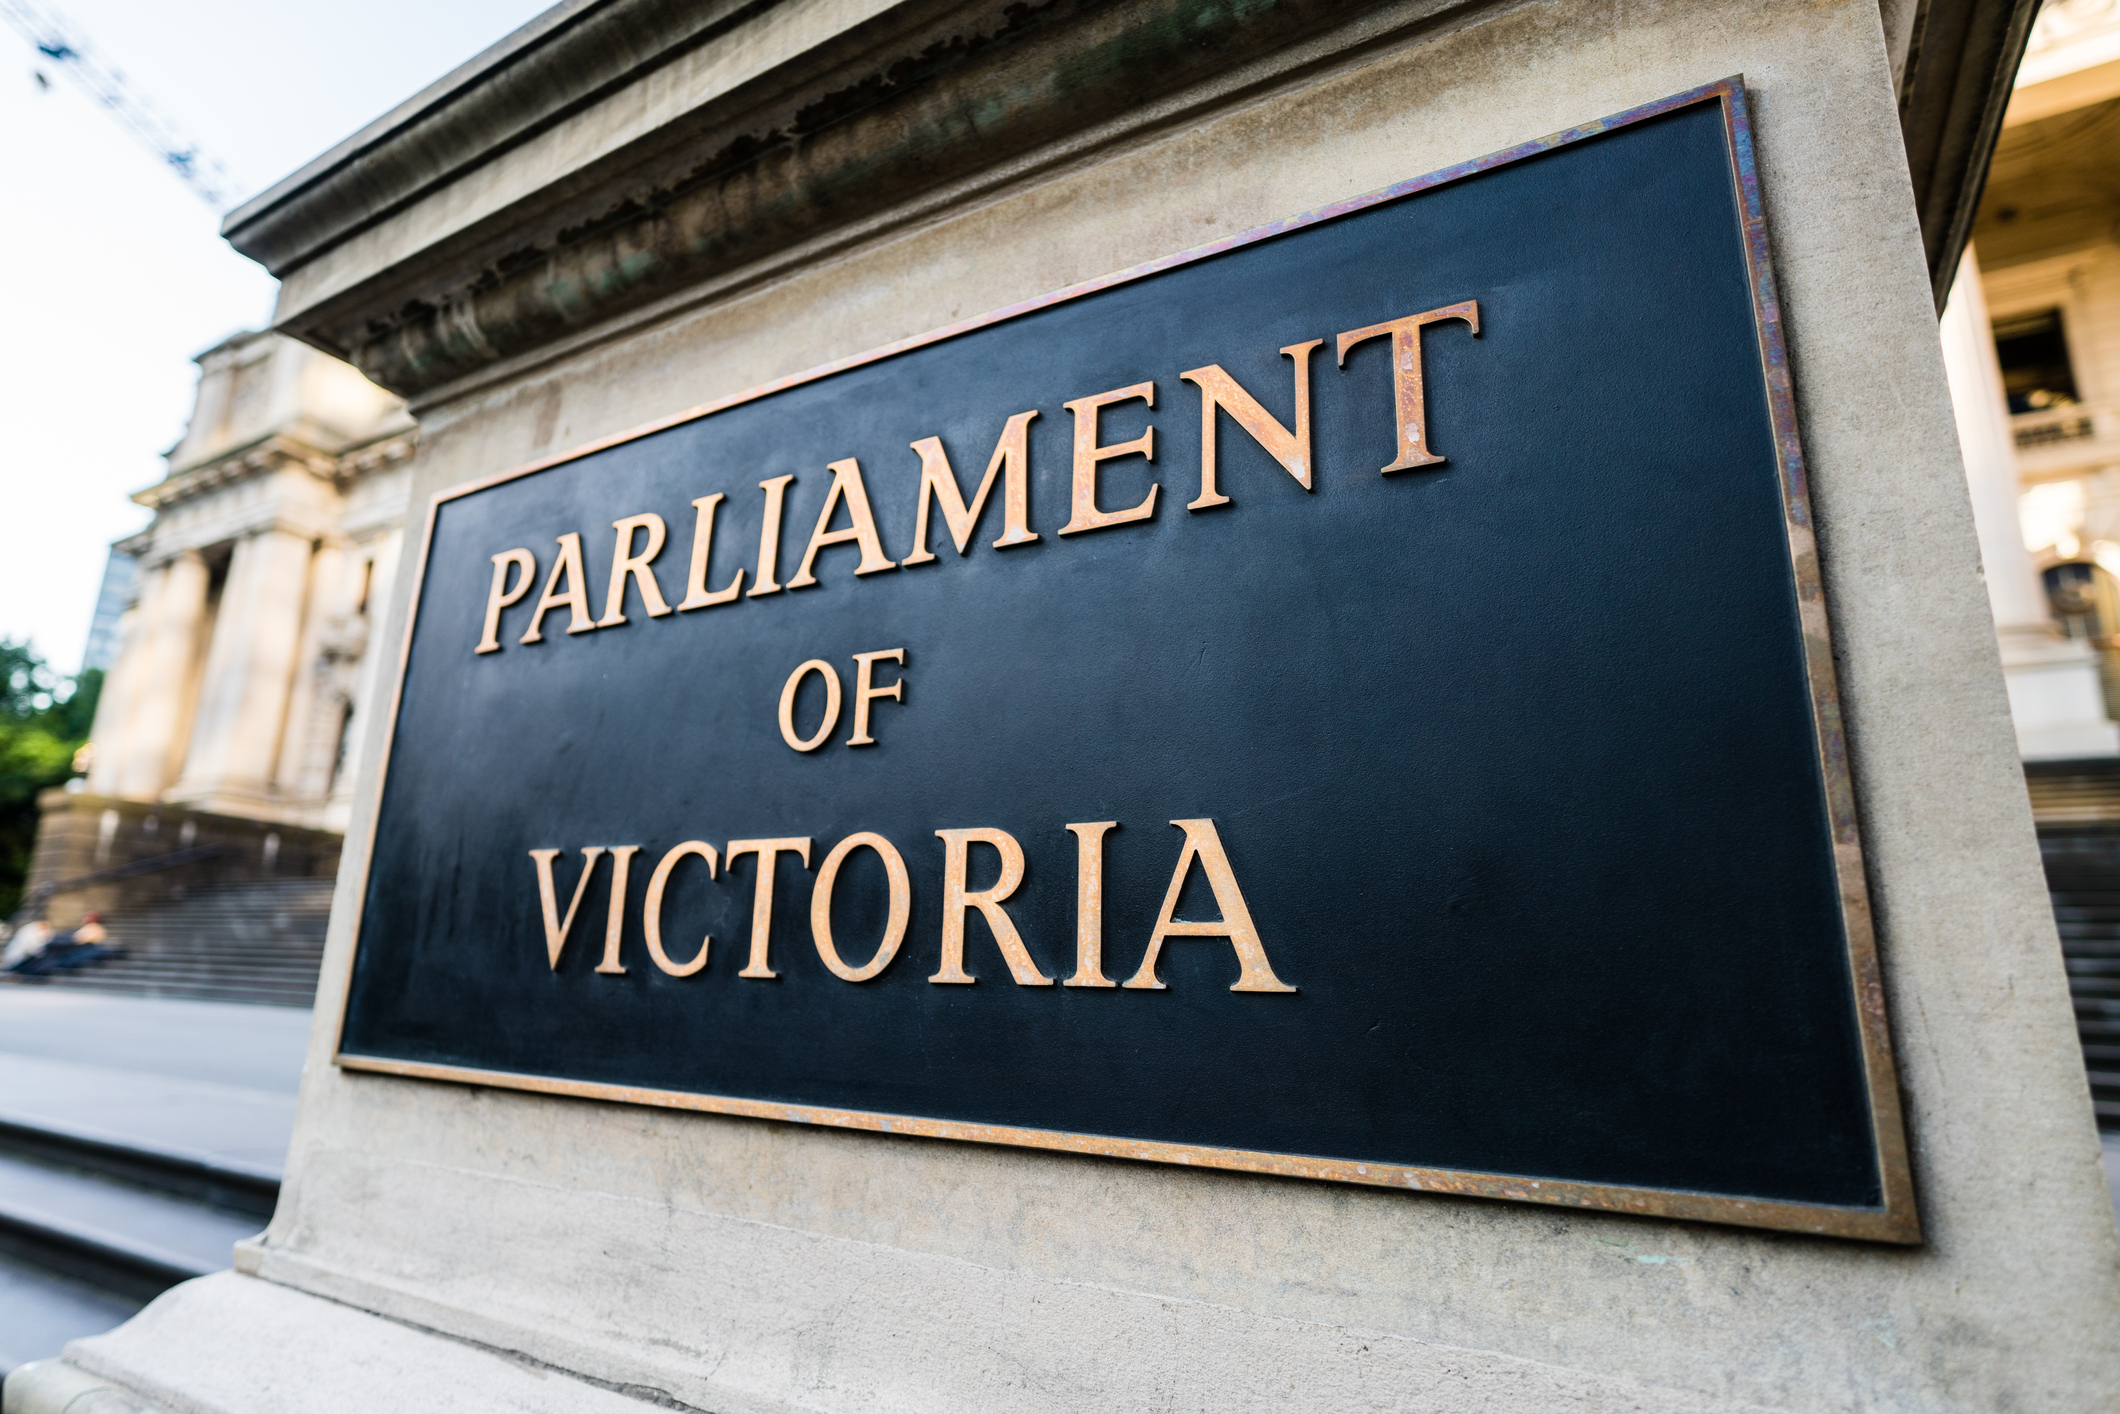 The man charged with 'fixing everything' in Victoria this year